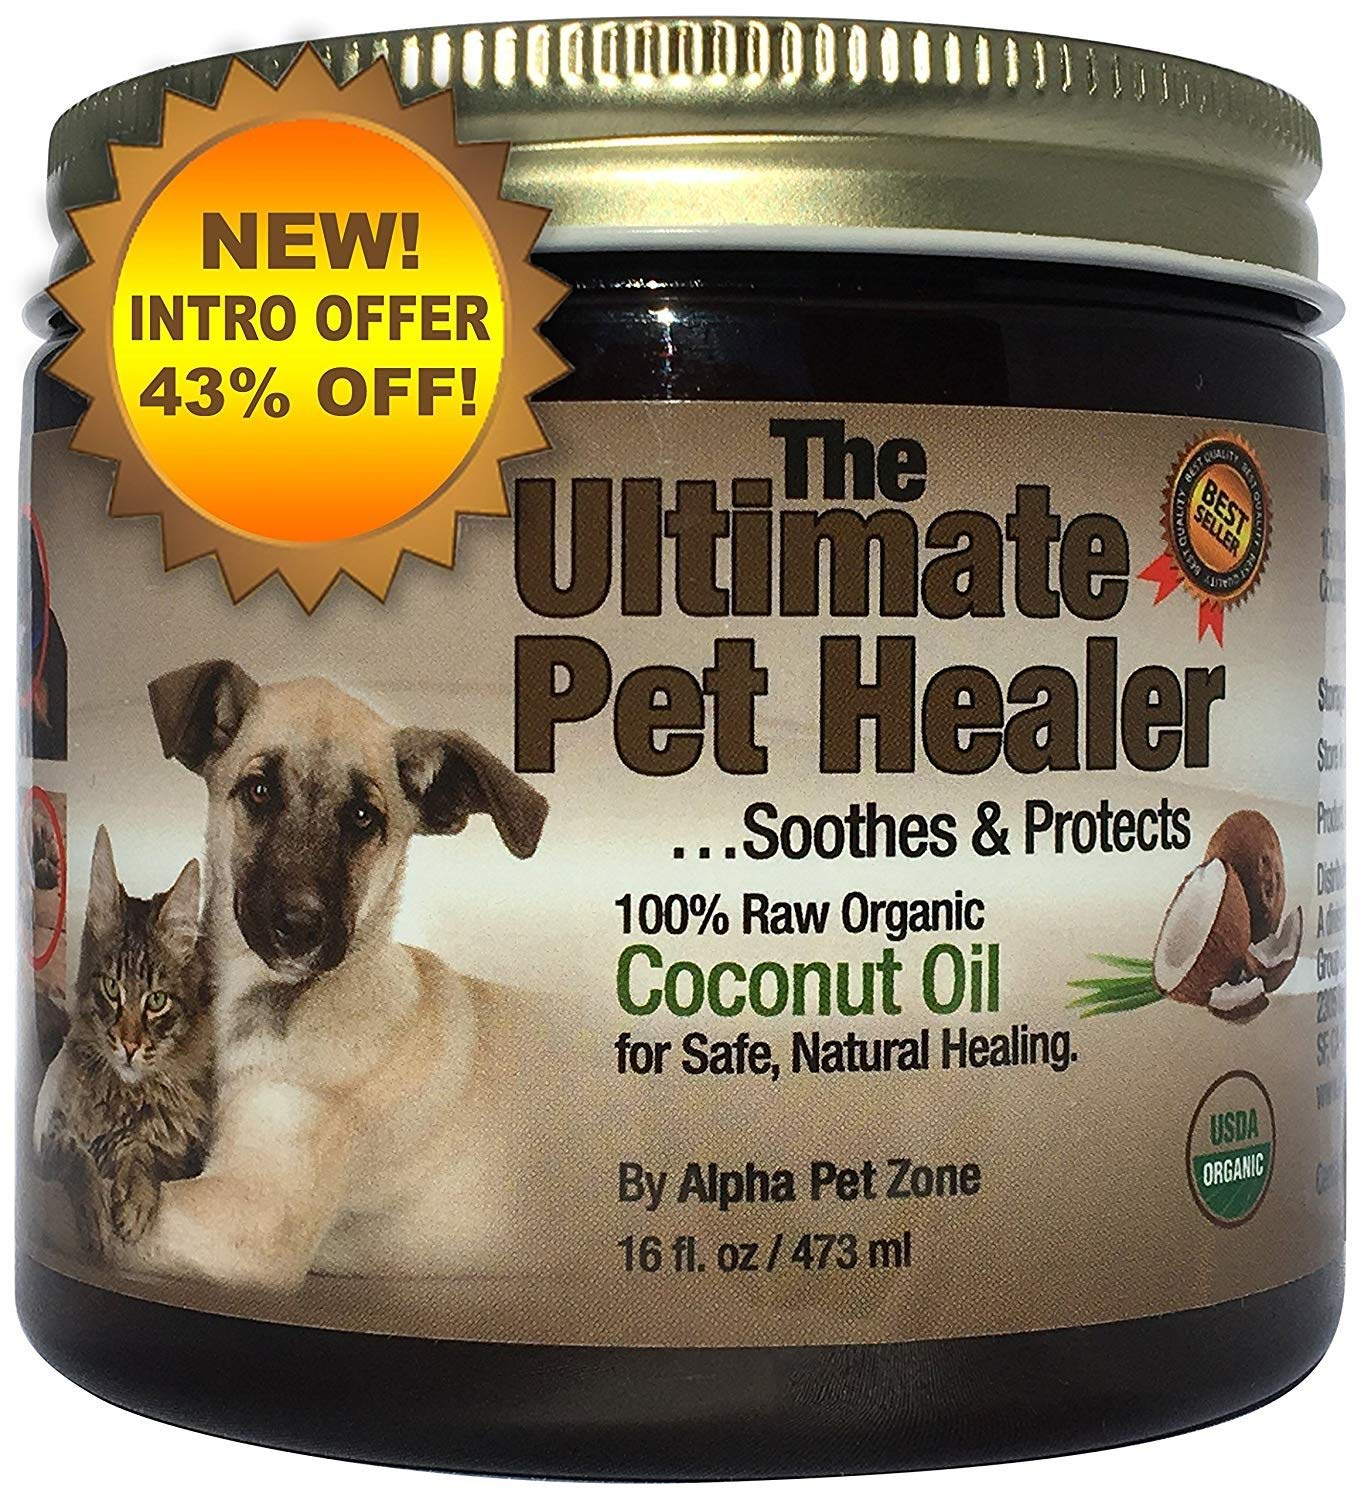 Alpha Pet Zone Coconut Oil for Dogs, Treatment for Itchy Skin, Dry Elbows, Paws and Nose (16 oz) by Coconut Oil for Dogs